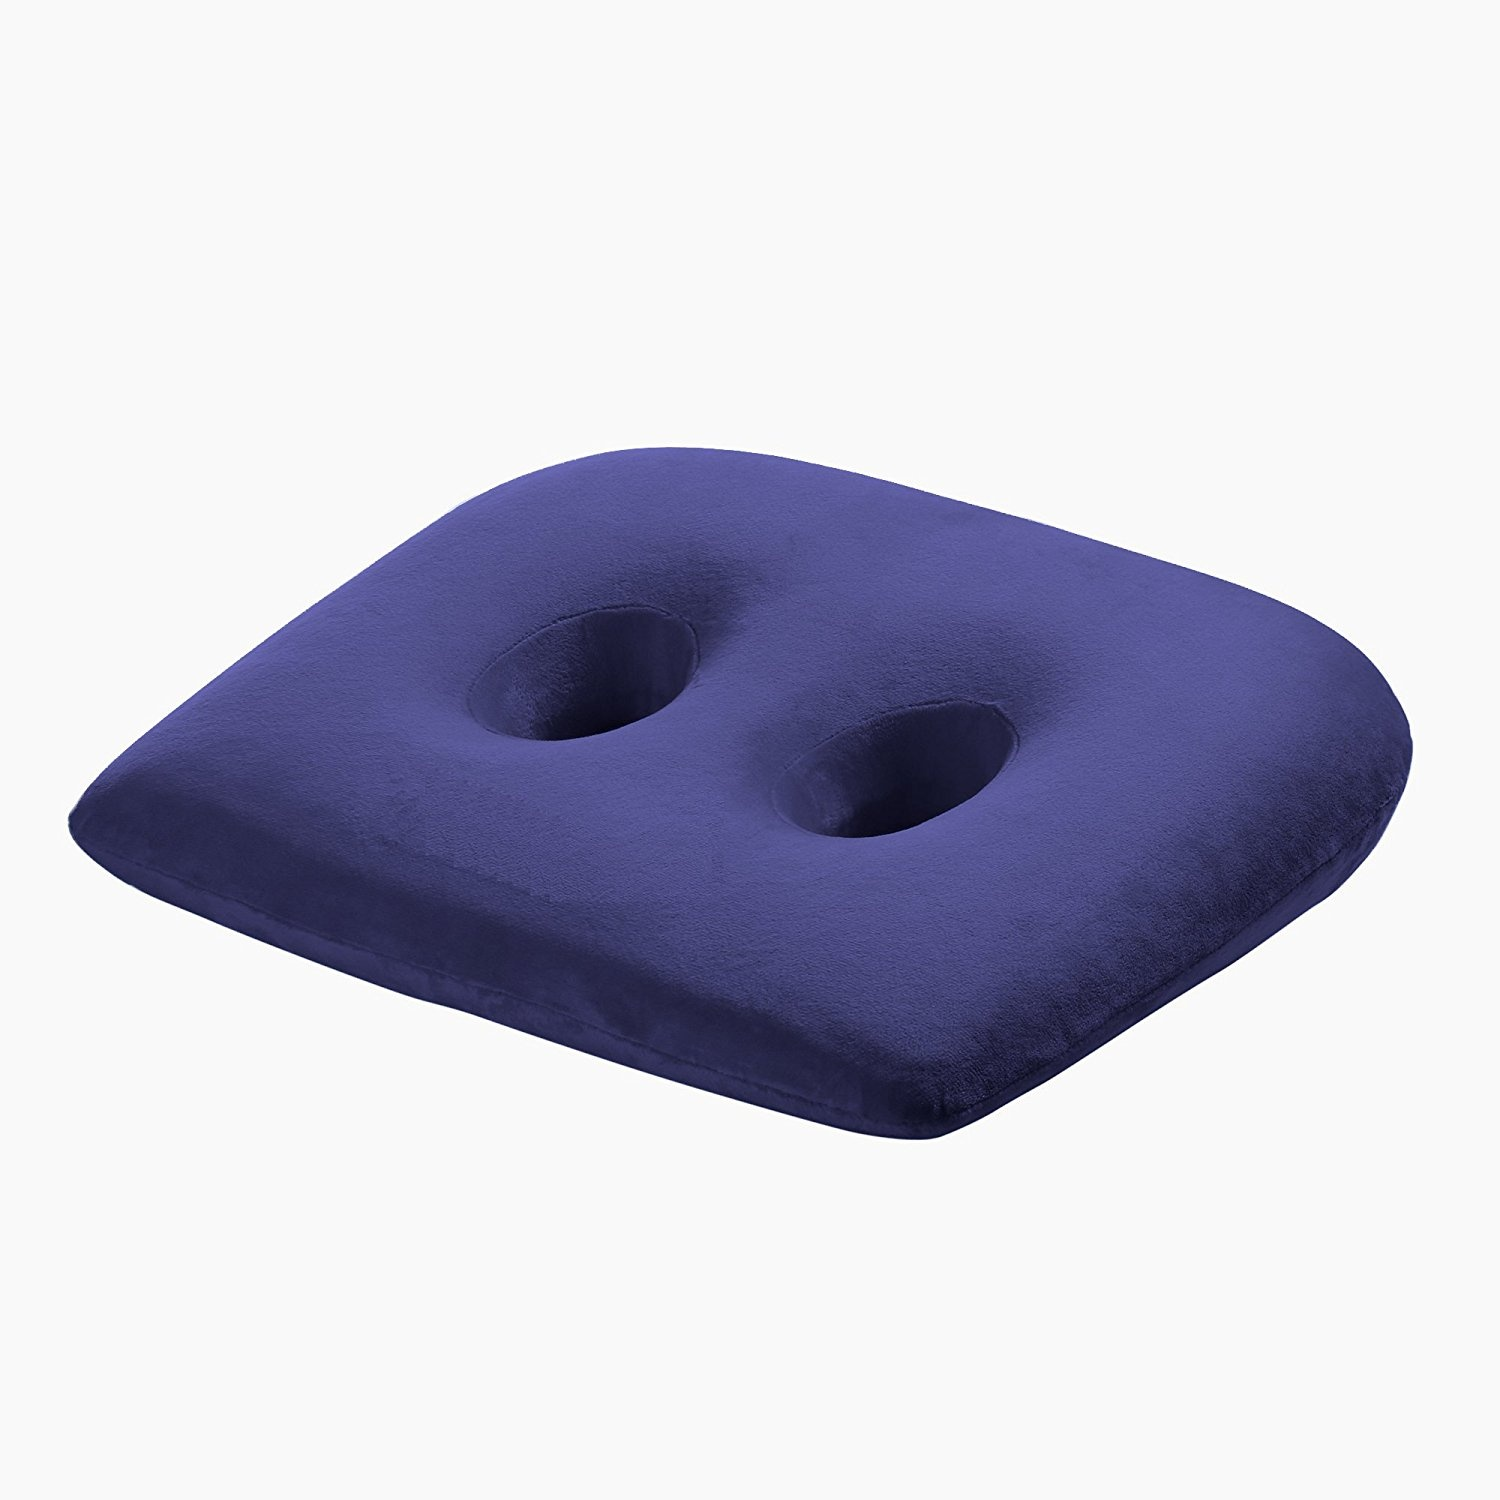 Wer Ischial Tuberosity Seat Cushion With Two Holes For Sitting Bones Washable Breathable Cover Travelling Tv Reading Home Office Car 43 36 8 6cm